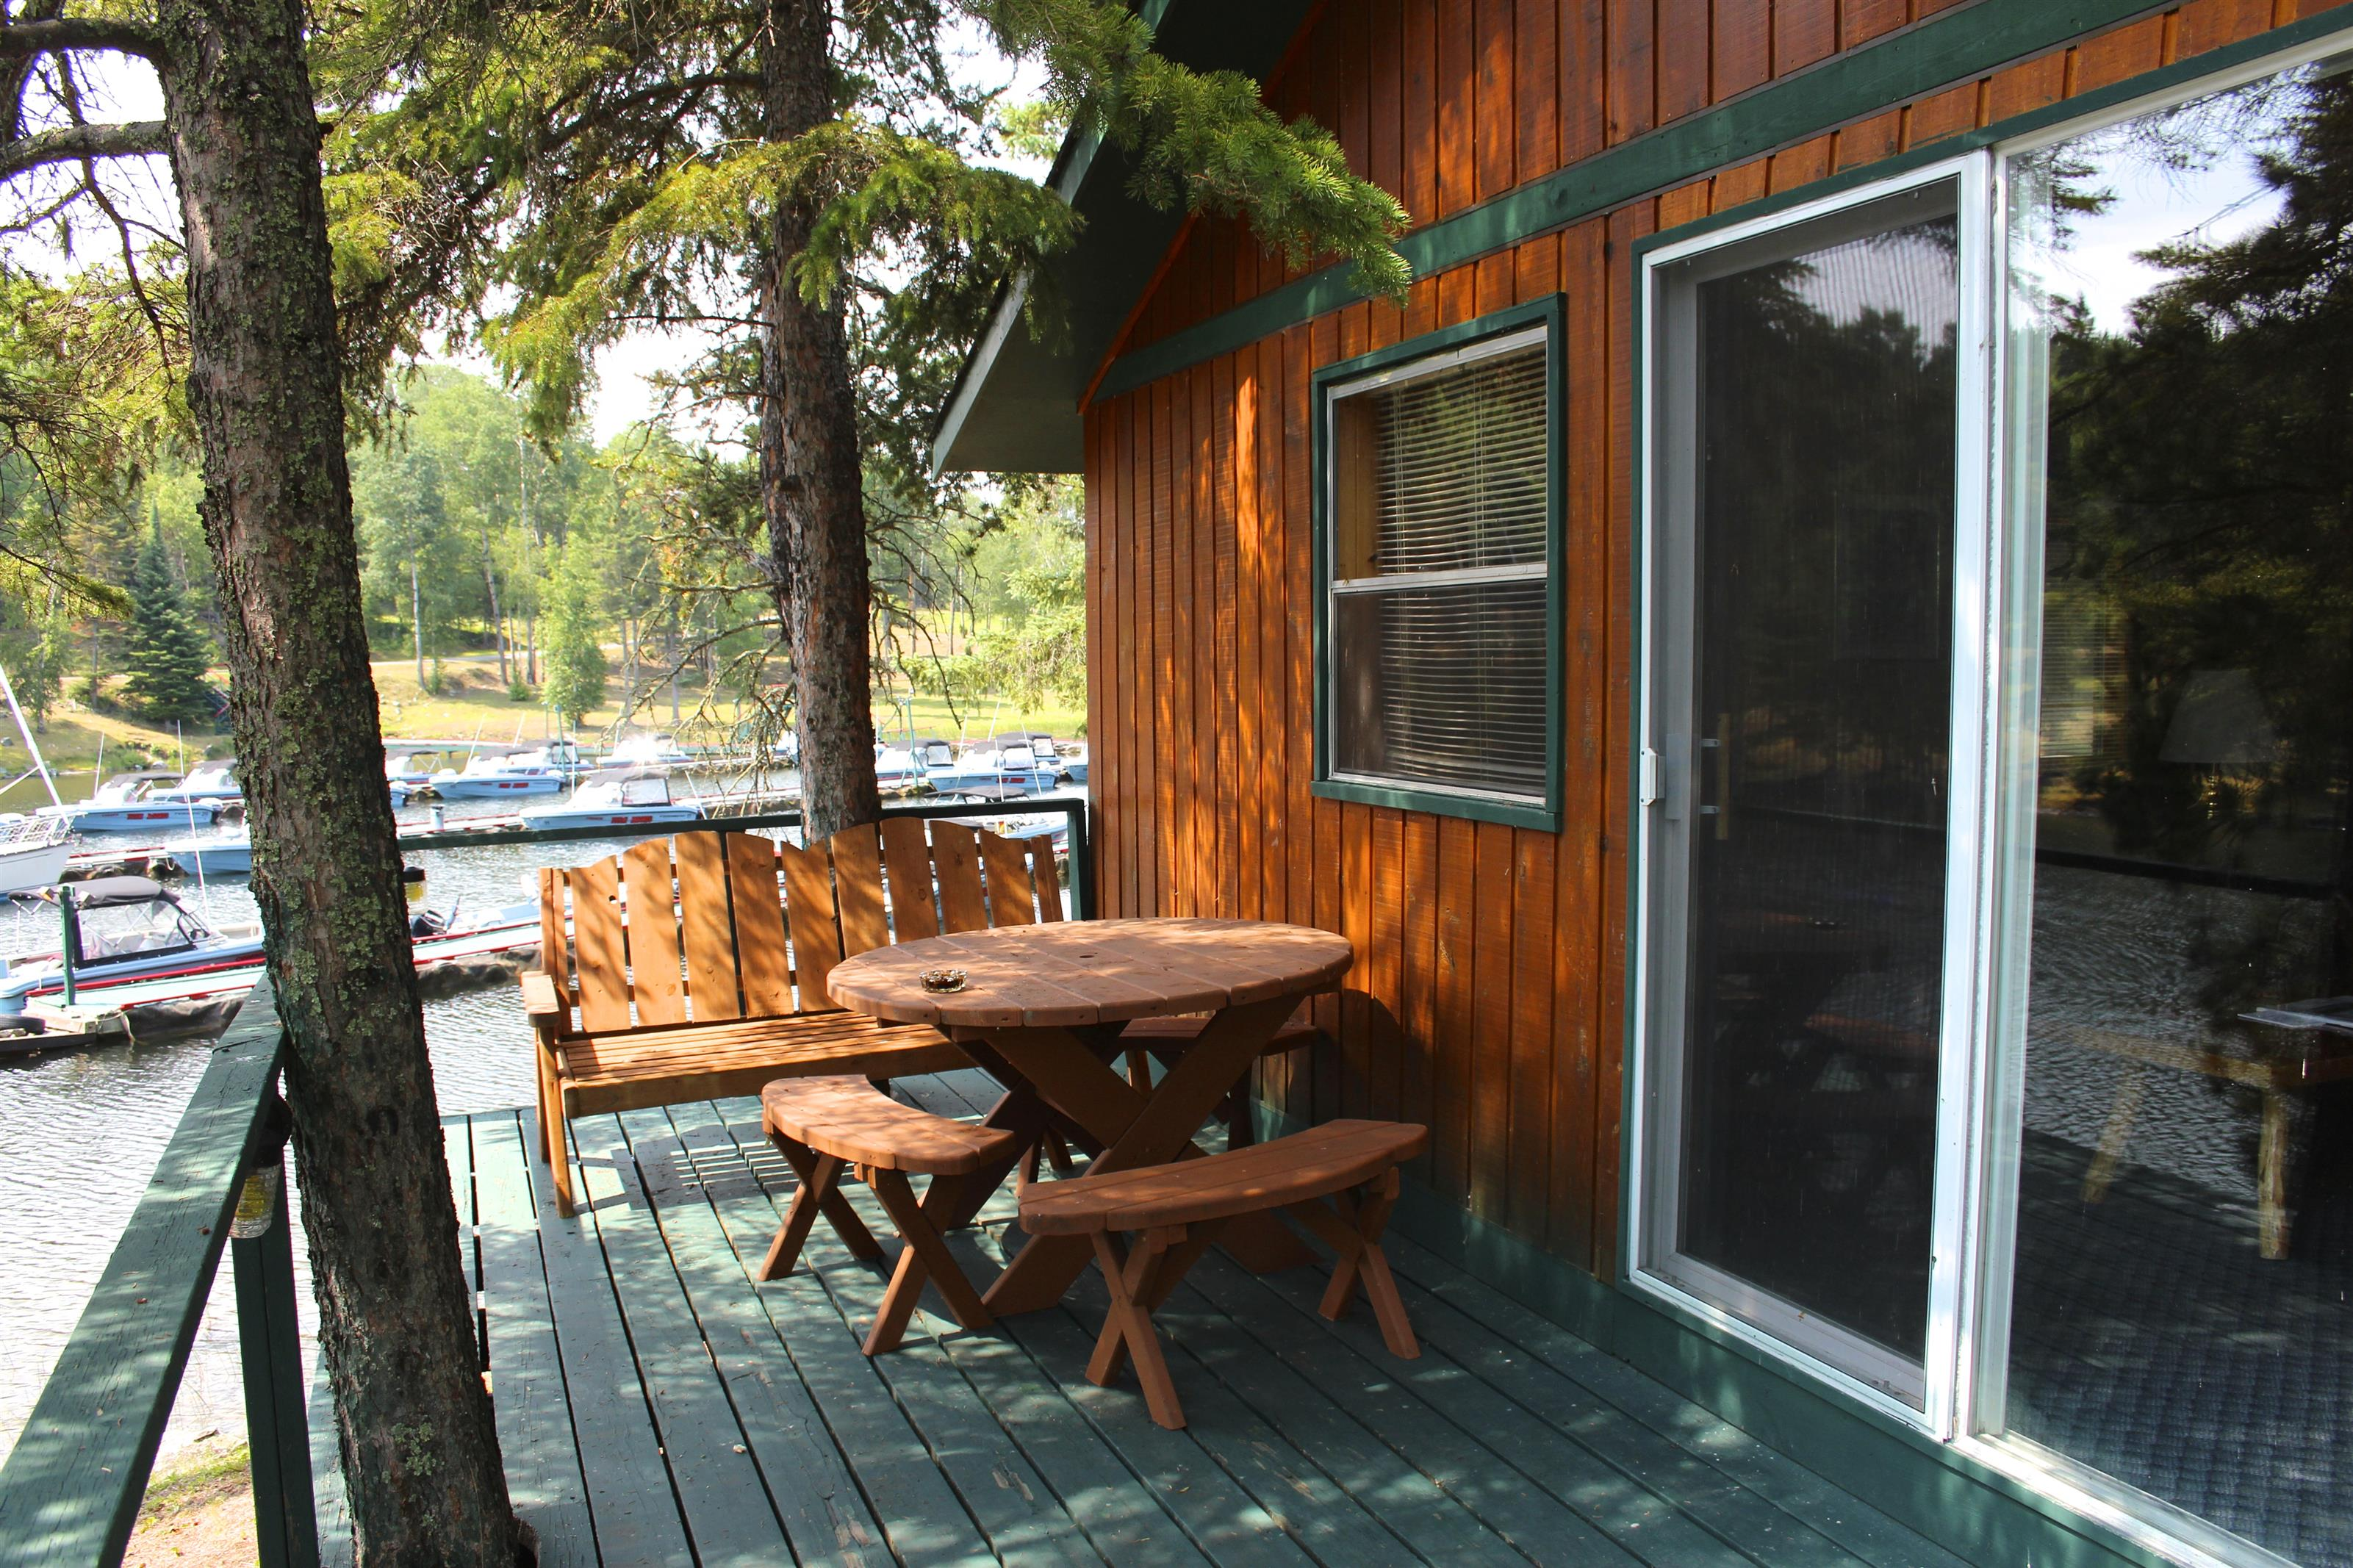 outside view of a cabin from the cabins deck with a table and some benches